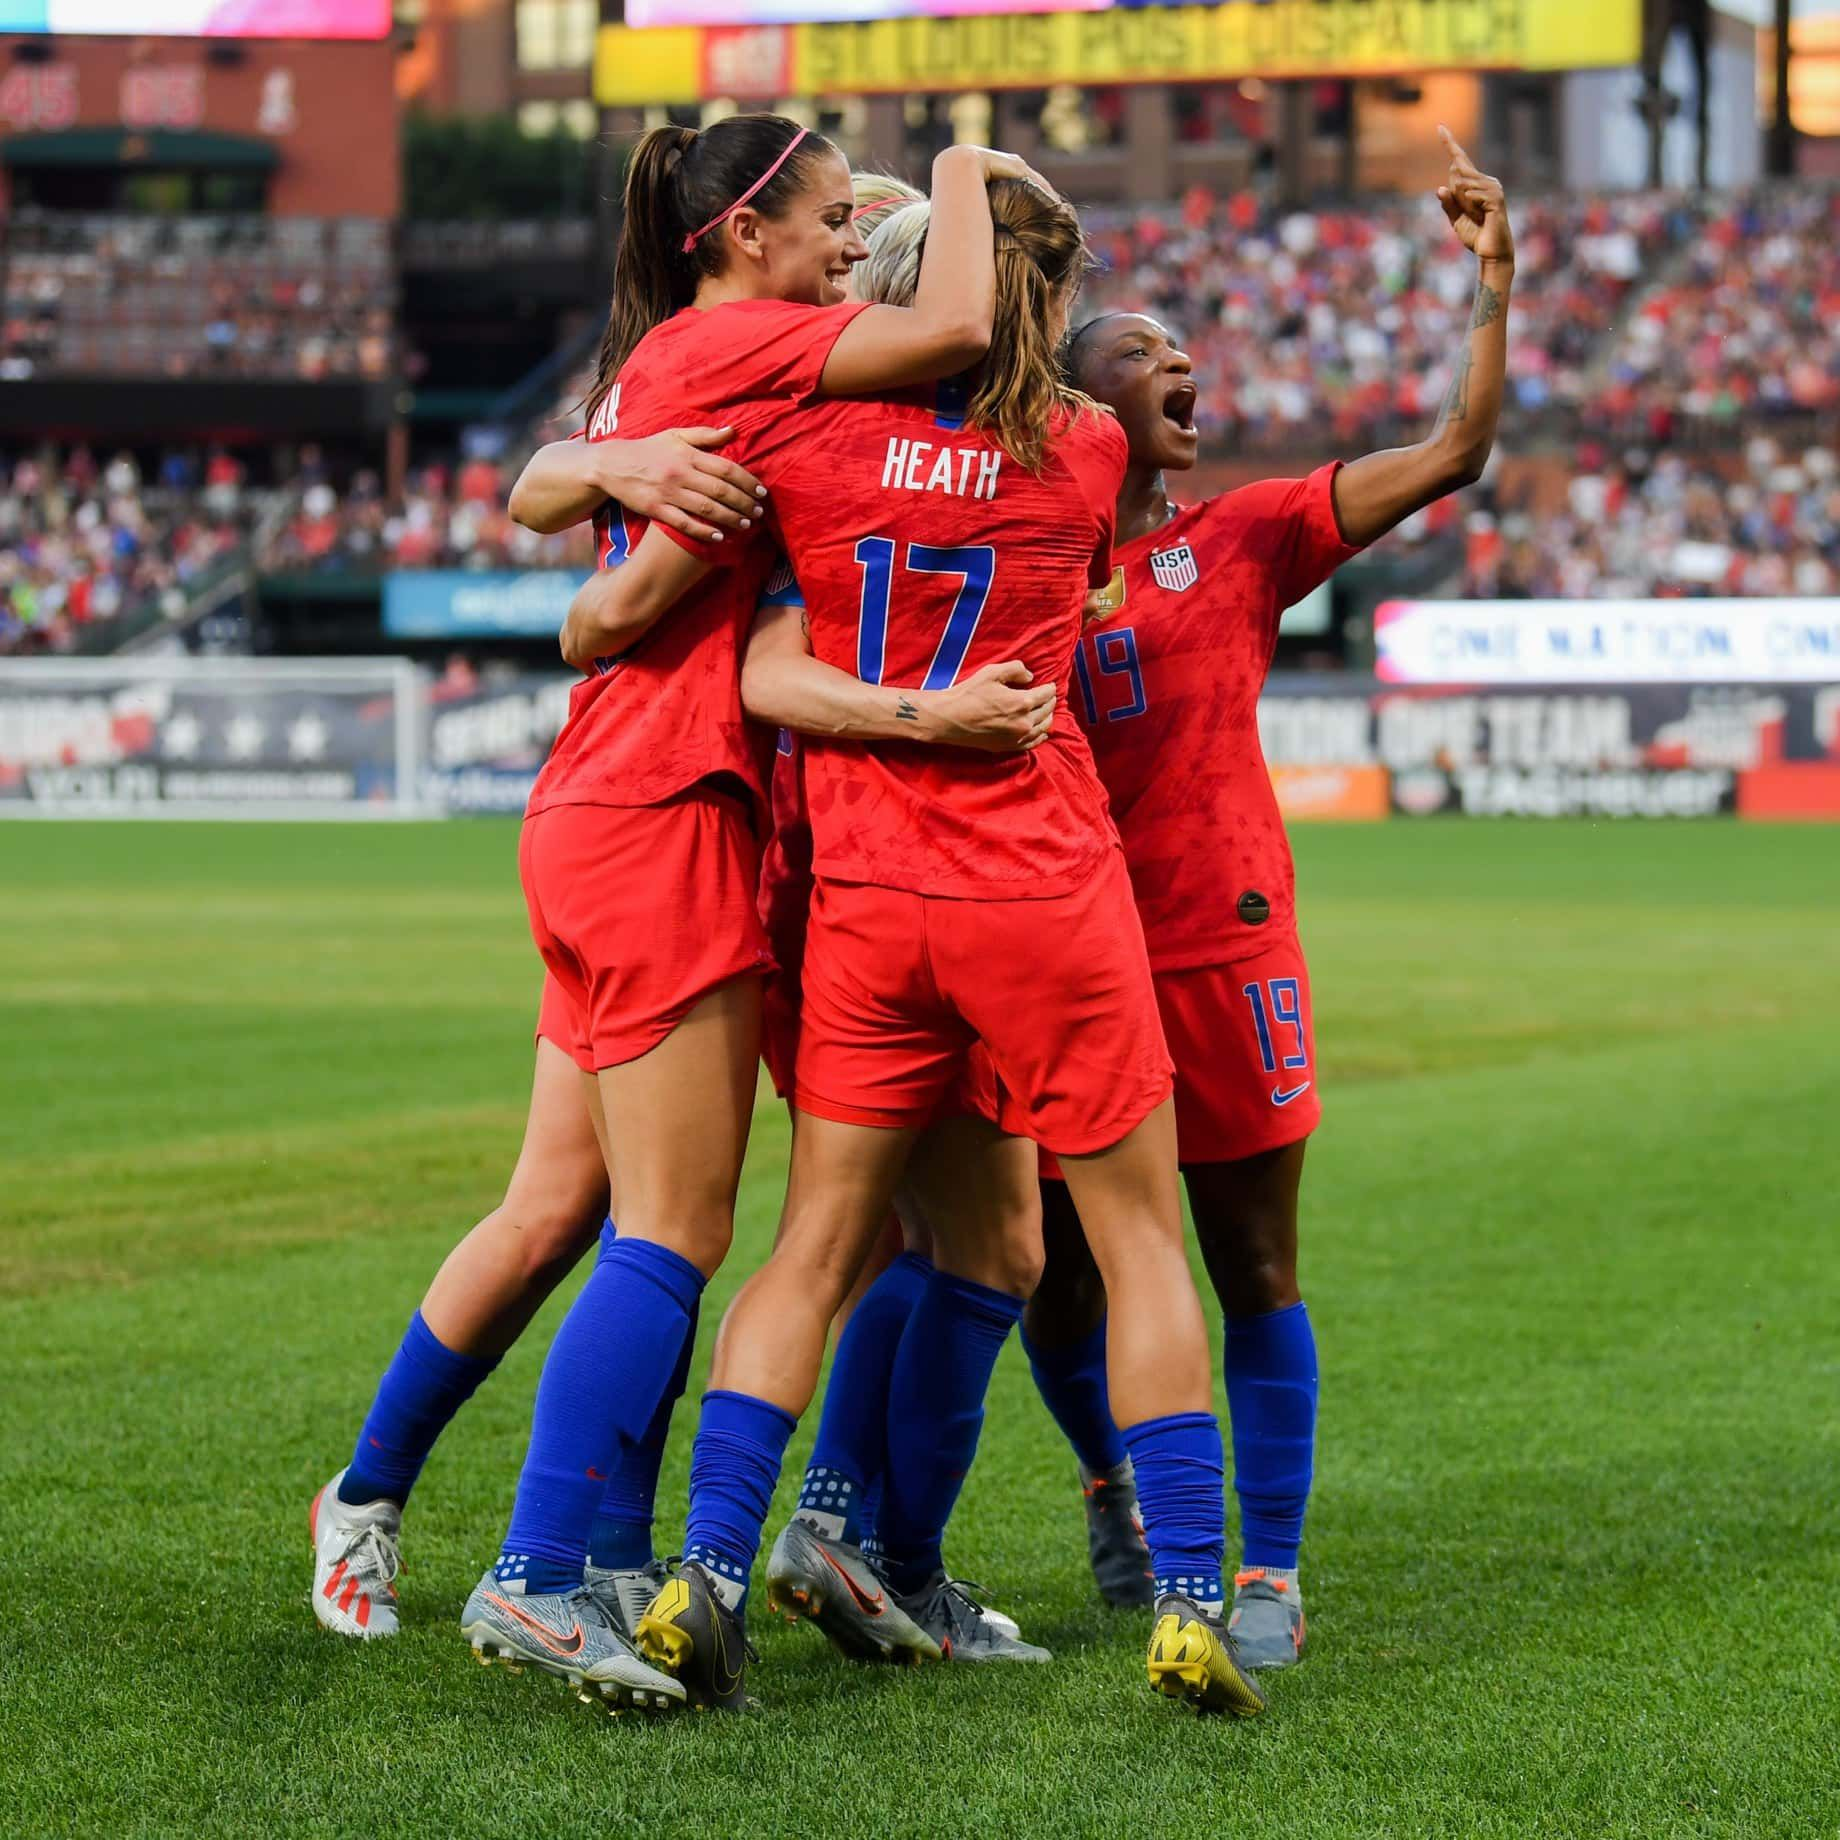 Uswnt Roster Drop May 2 2019 Uswnt Usa Soccer Team Us Women S National Soccer Team